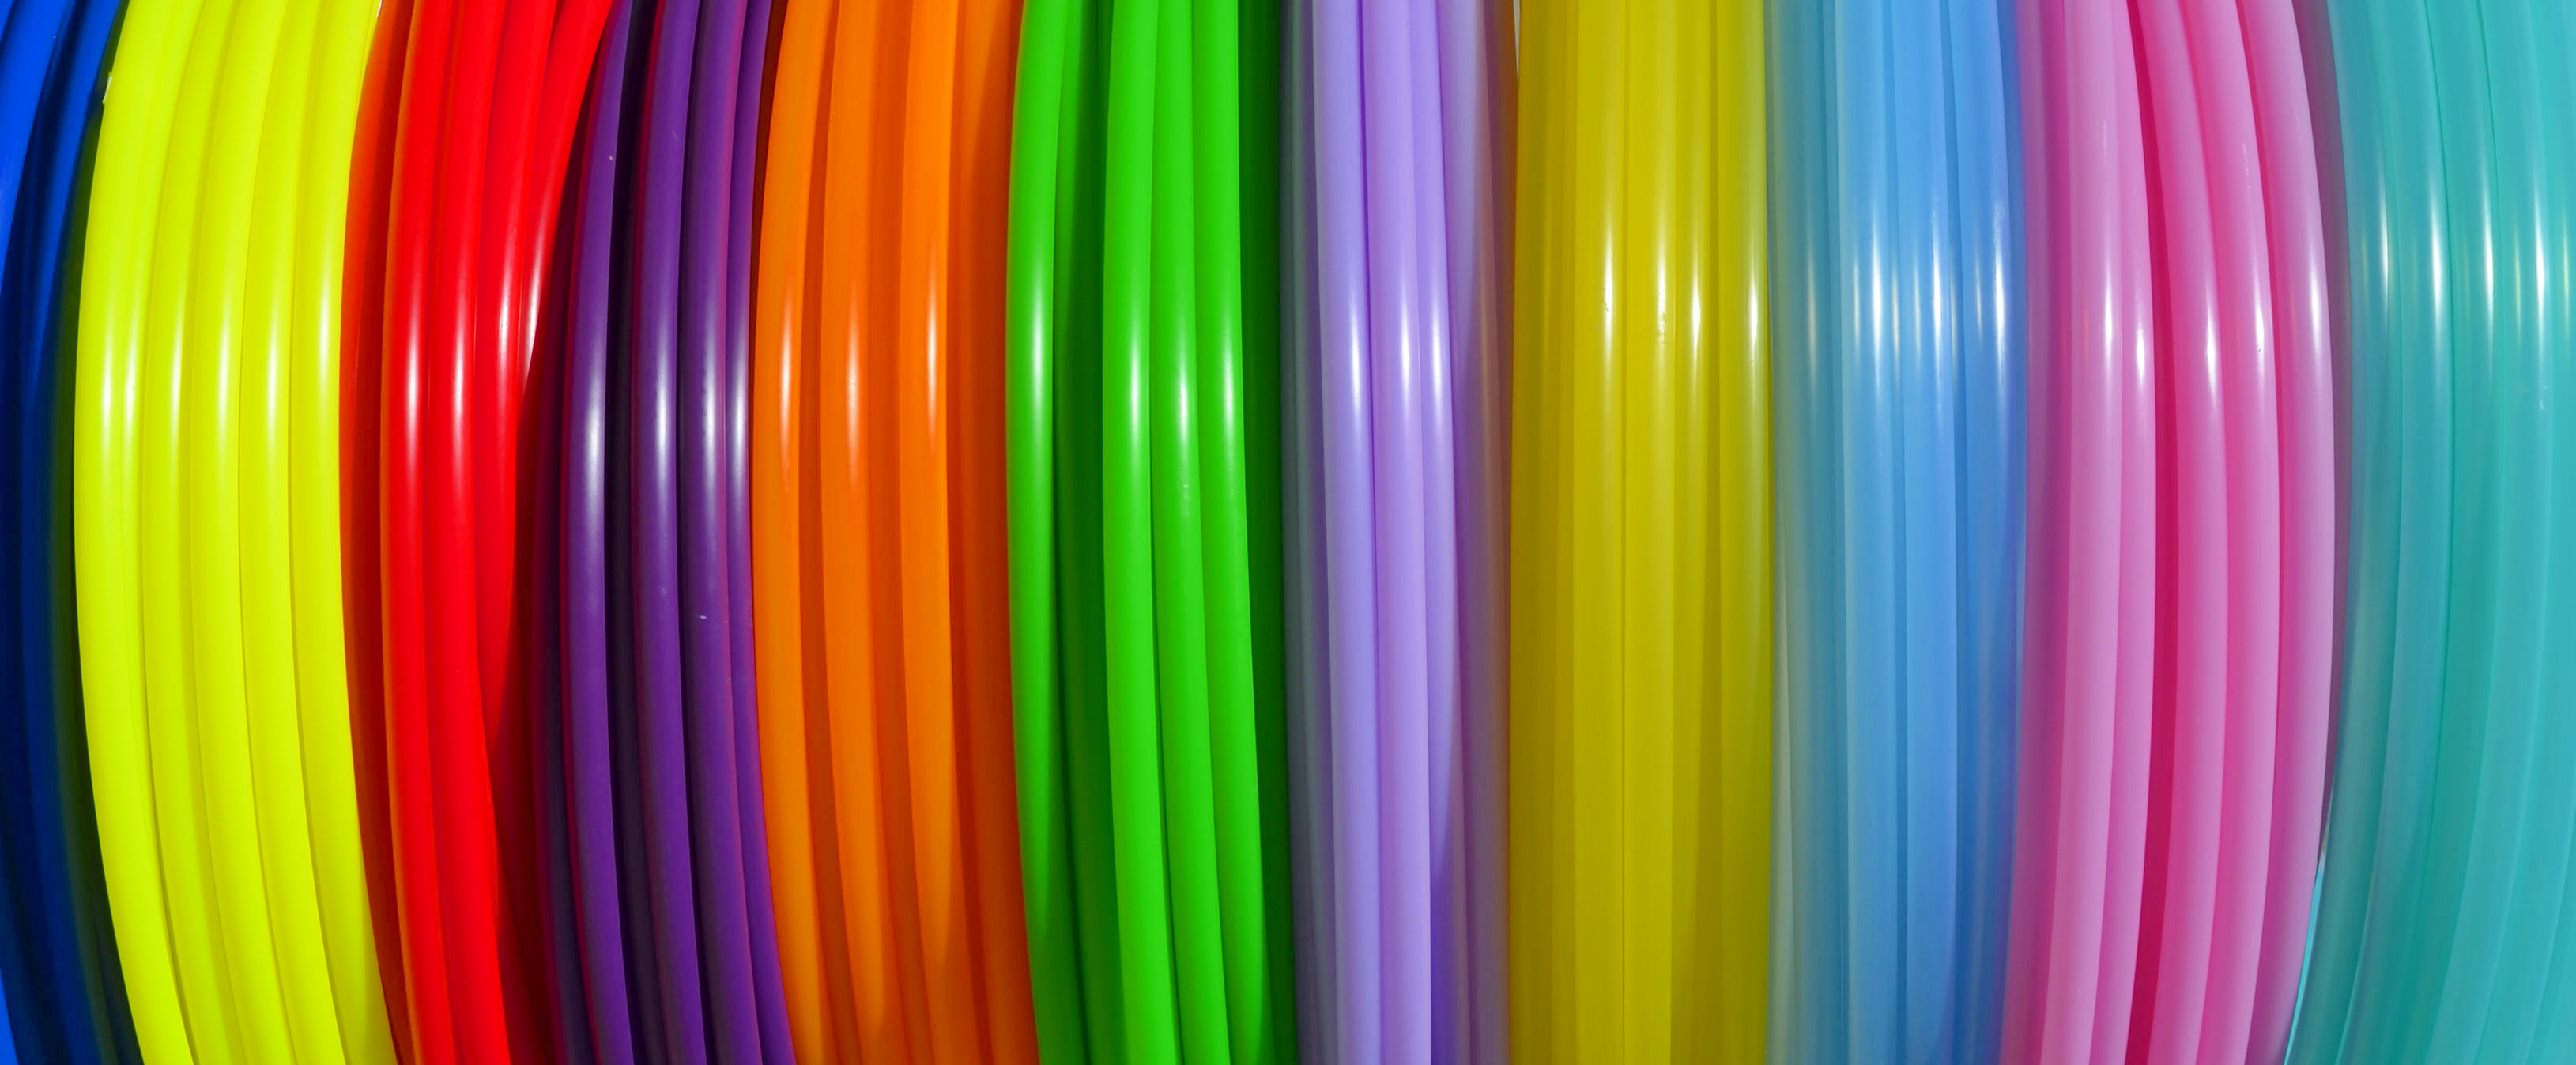 Types Of Tubing Used For Making Hula Hoops Ruby Hooping